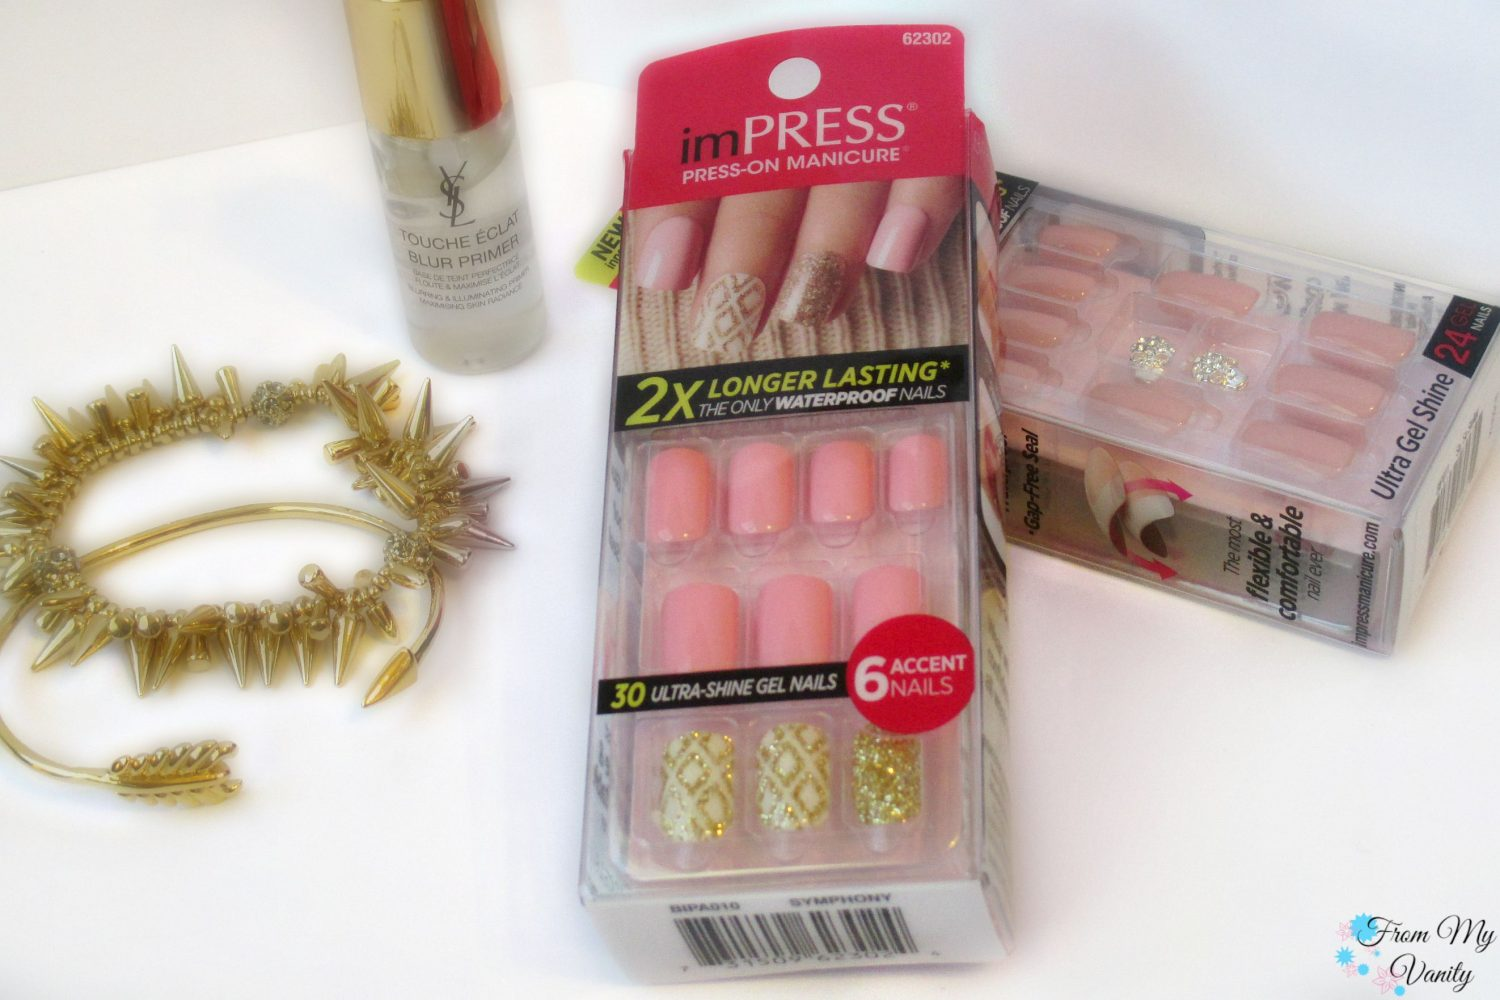 imPRESS Press-On Manicure // From My Vanity